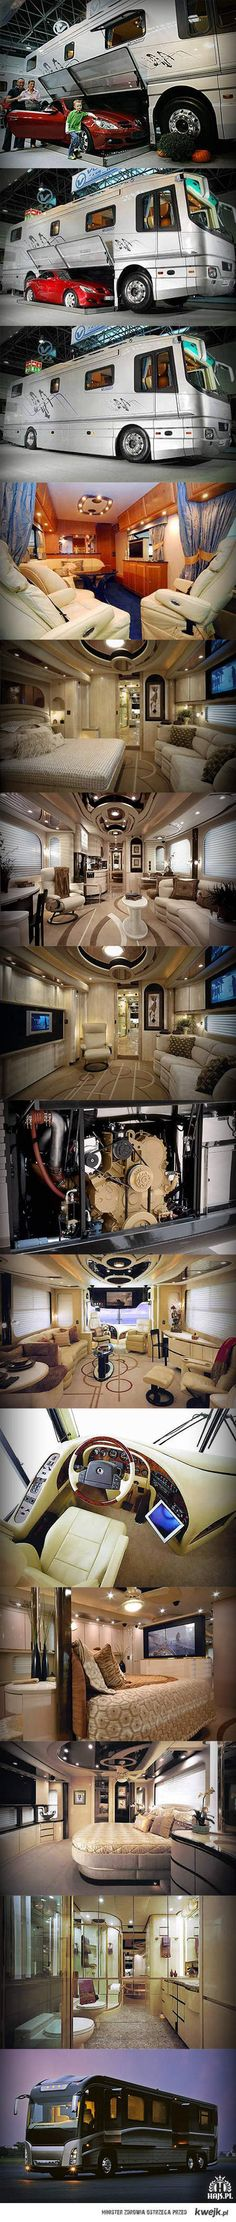 I really love this luxury bus.  I wish God will send this luxury bus to me.